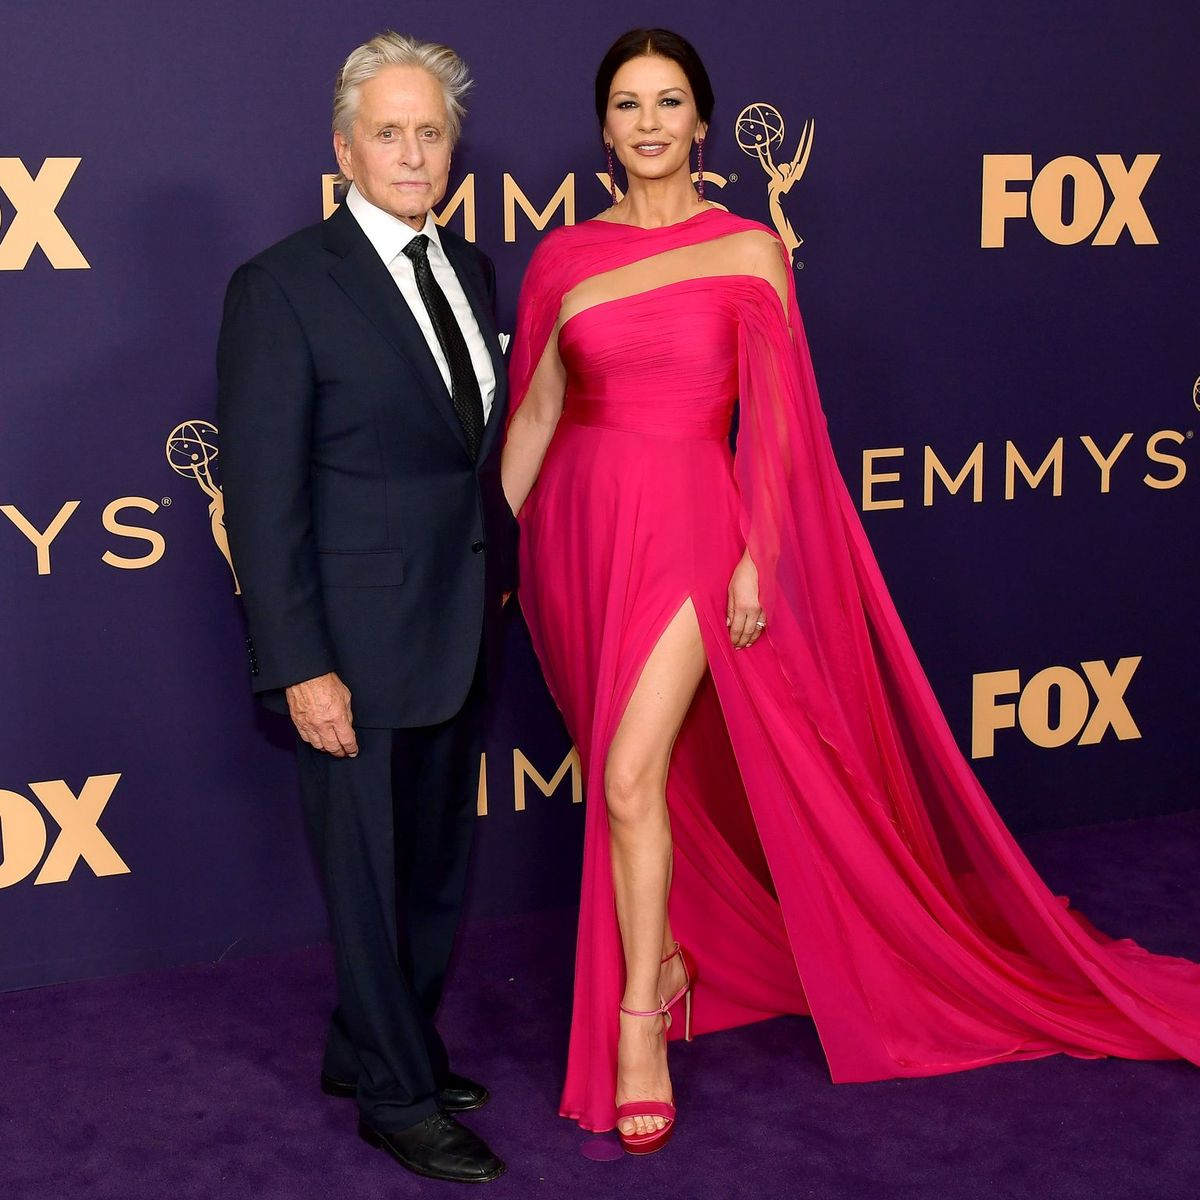 Michael Douglas and Catherine Zeta-Jones attend the 71st Emmy Awards on September 22, 2019. | Getty Images